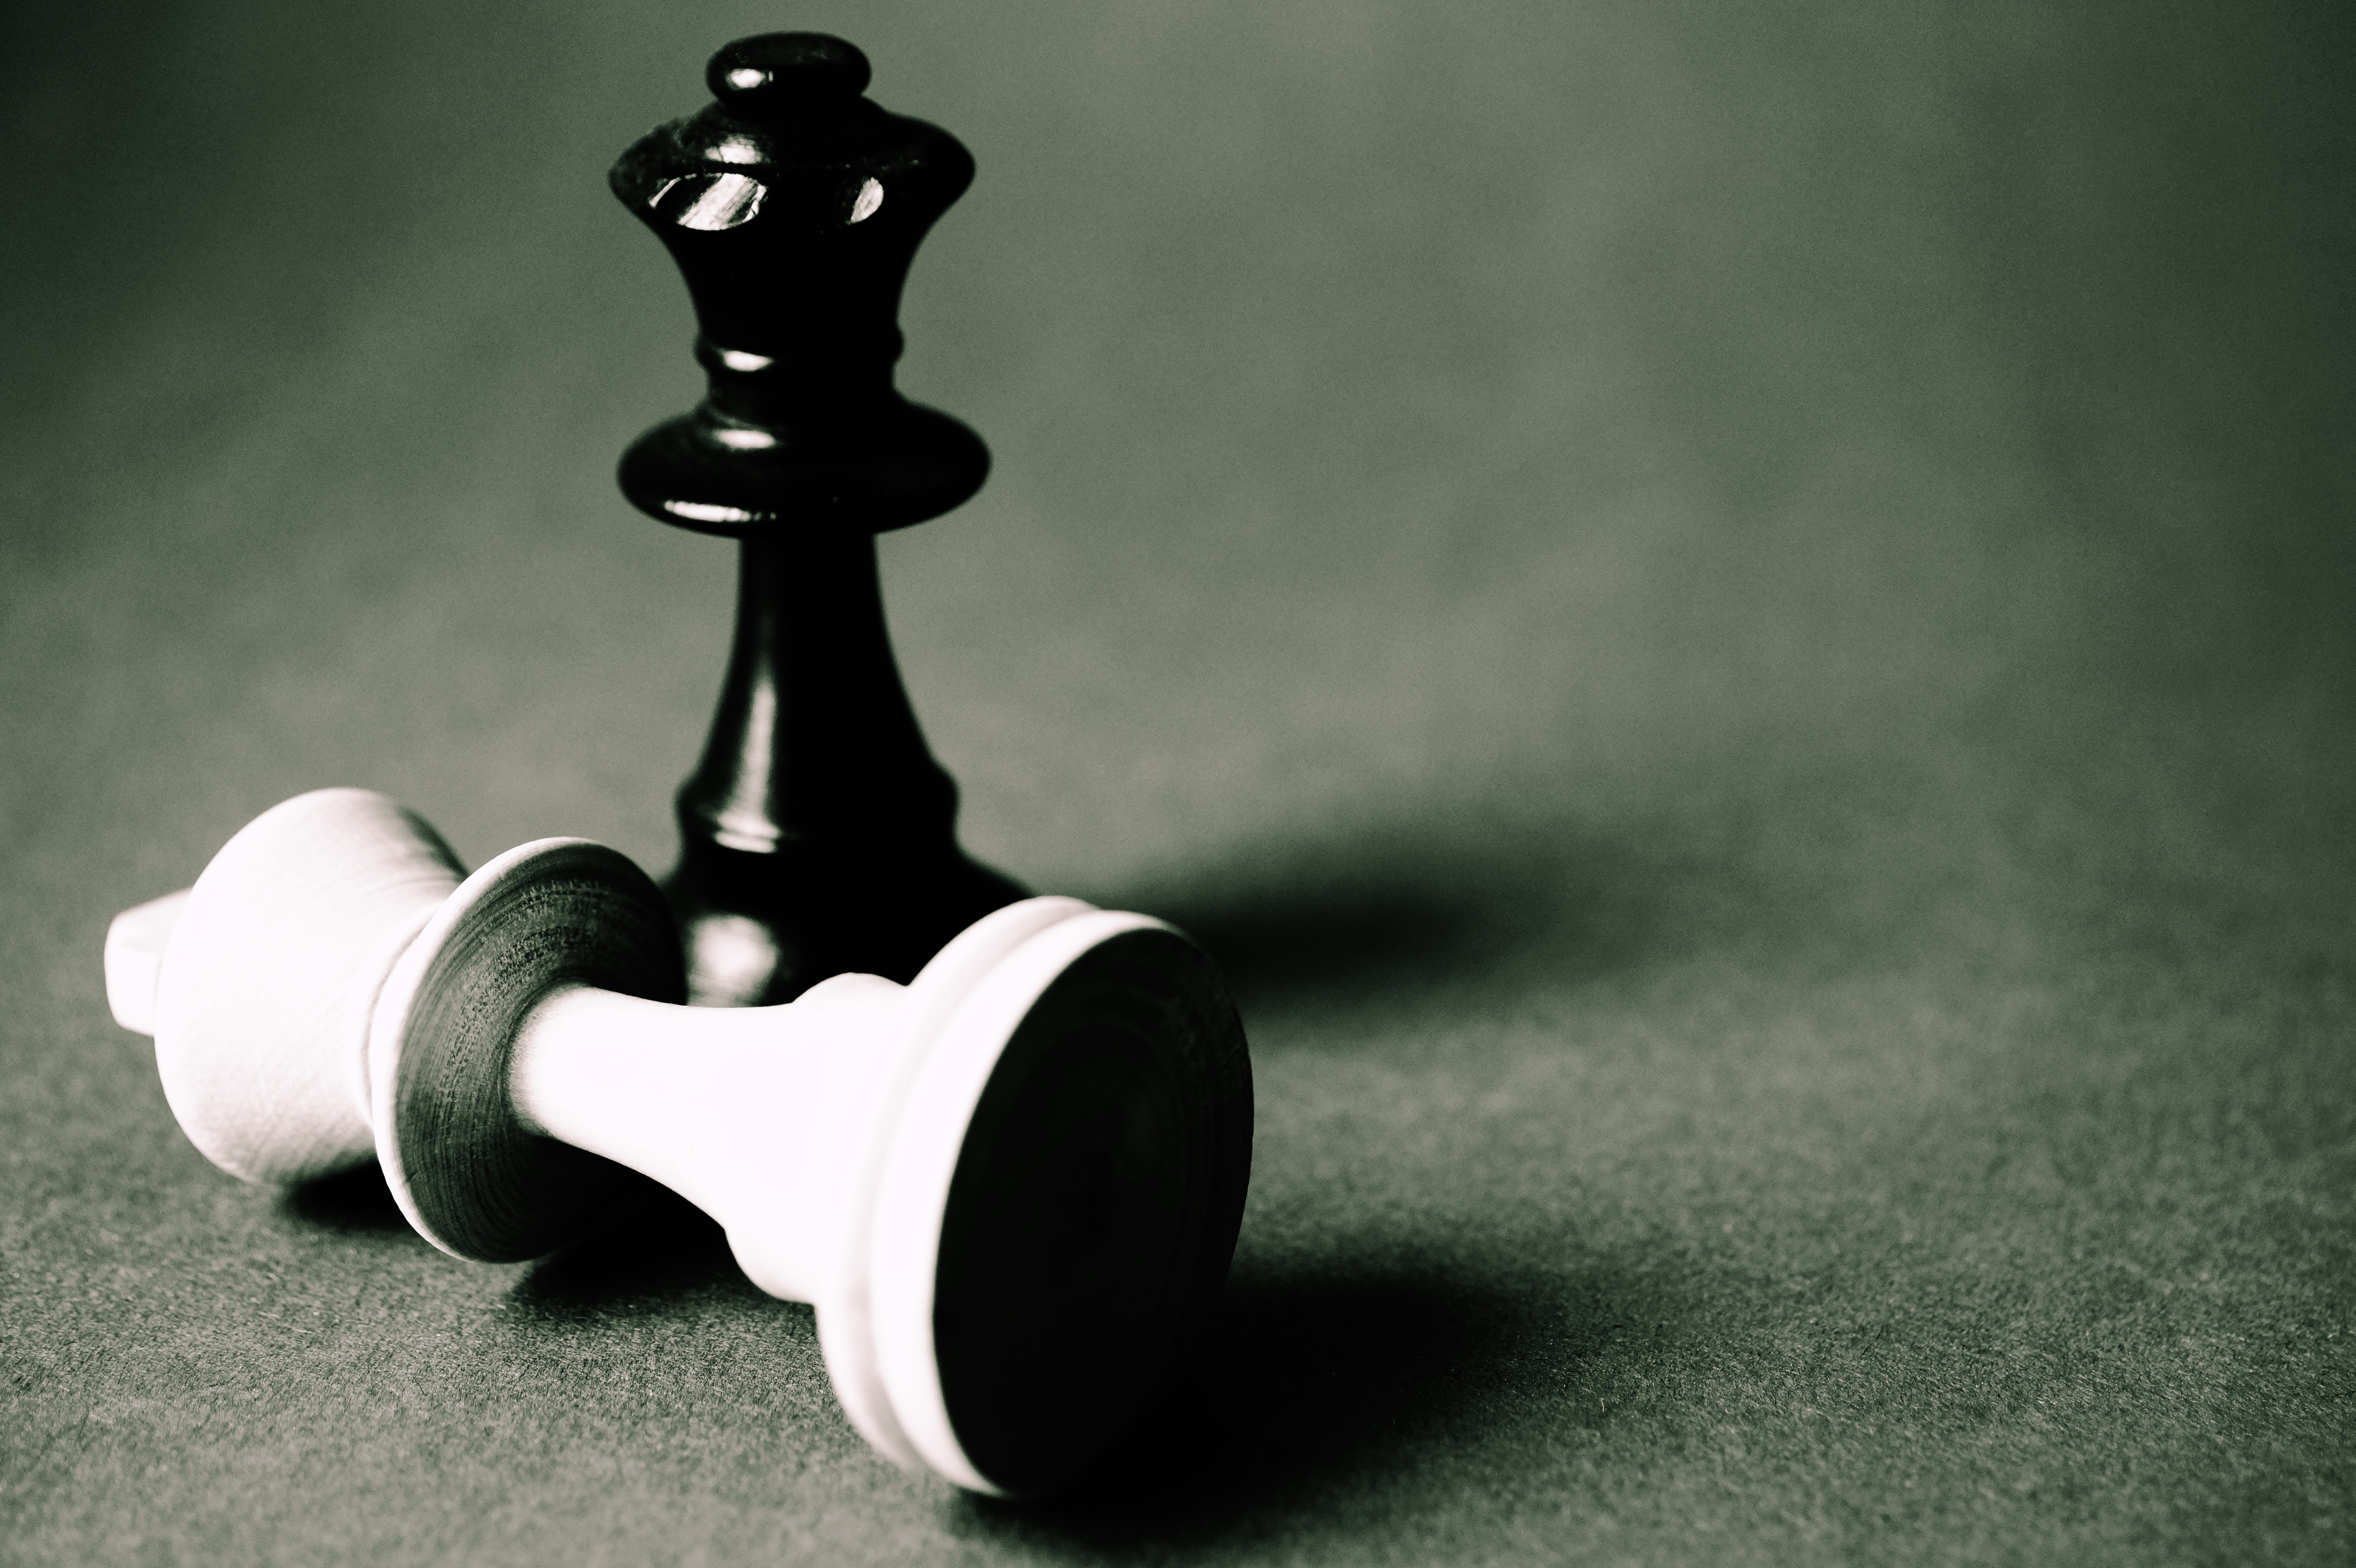 Black Queen Chess Piece, Black-and-white, Strategy, Still life, Recreation, HQ Photo